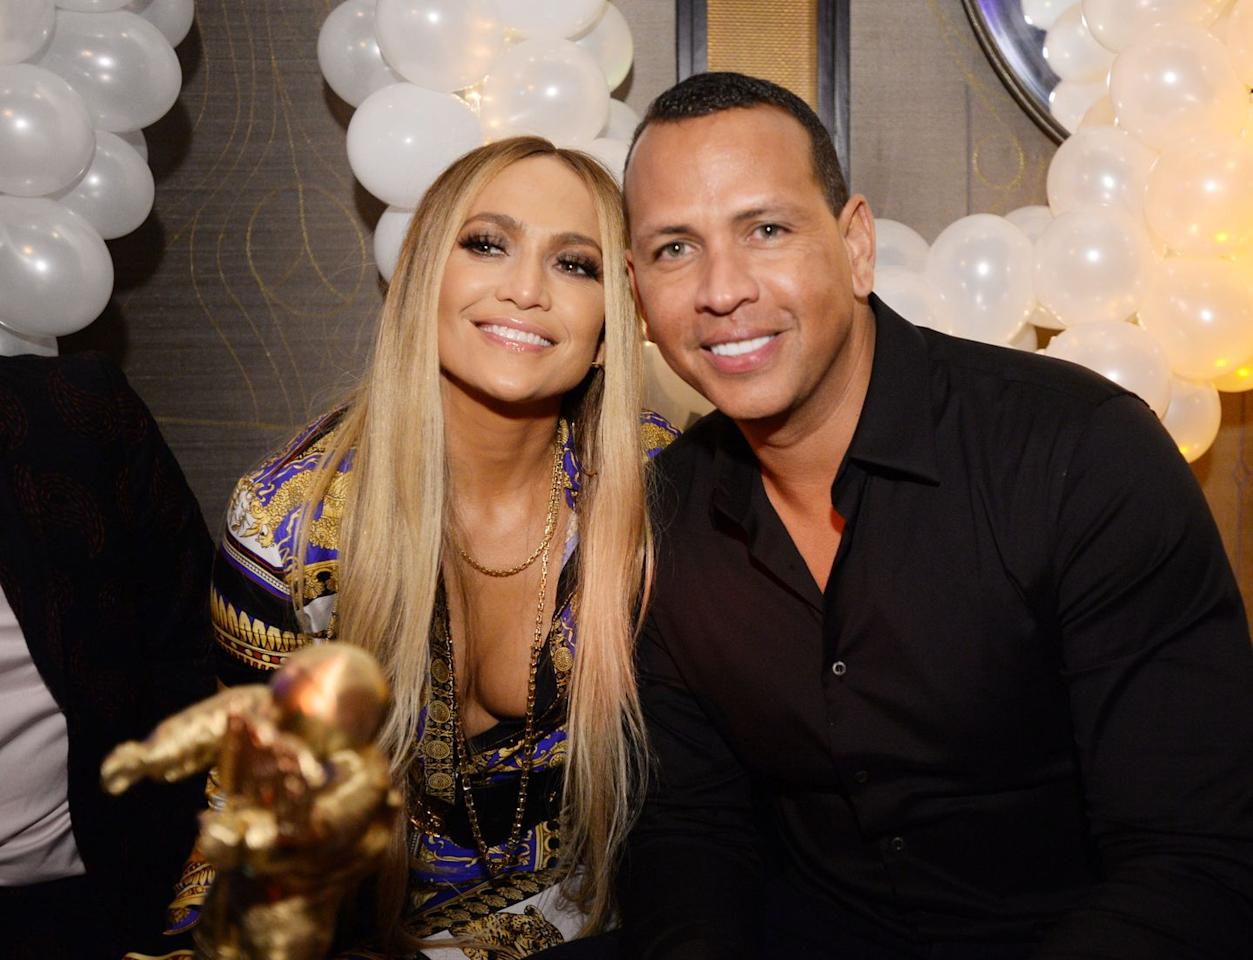 "<p>J.Lo and A-Rod officially announced their support for Joe Biden in a <a href=""https://www.youtube.com/watch?v=_28rjvdzEIE"" target=""_blank"">video chat</a> with the candidate and his wife, Jill. In the video, the couple talked to Biden about issues impacting the Latinx community. </p><p>""We want to come together as a team to defeat COVID and rebuild this US economy that needs us all so much,"" Rodriguez said. </p><p>""It's my hope and quest that the Latino community … start understanding their power,"" Lopez added. </p>"